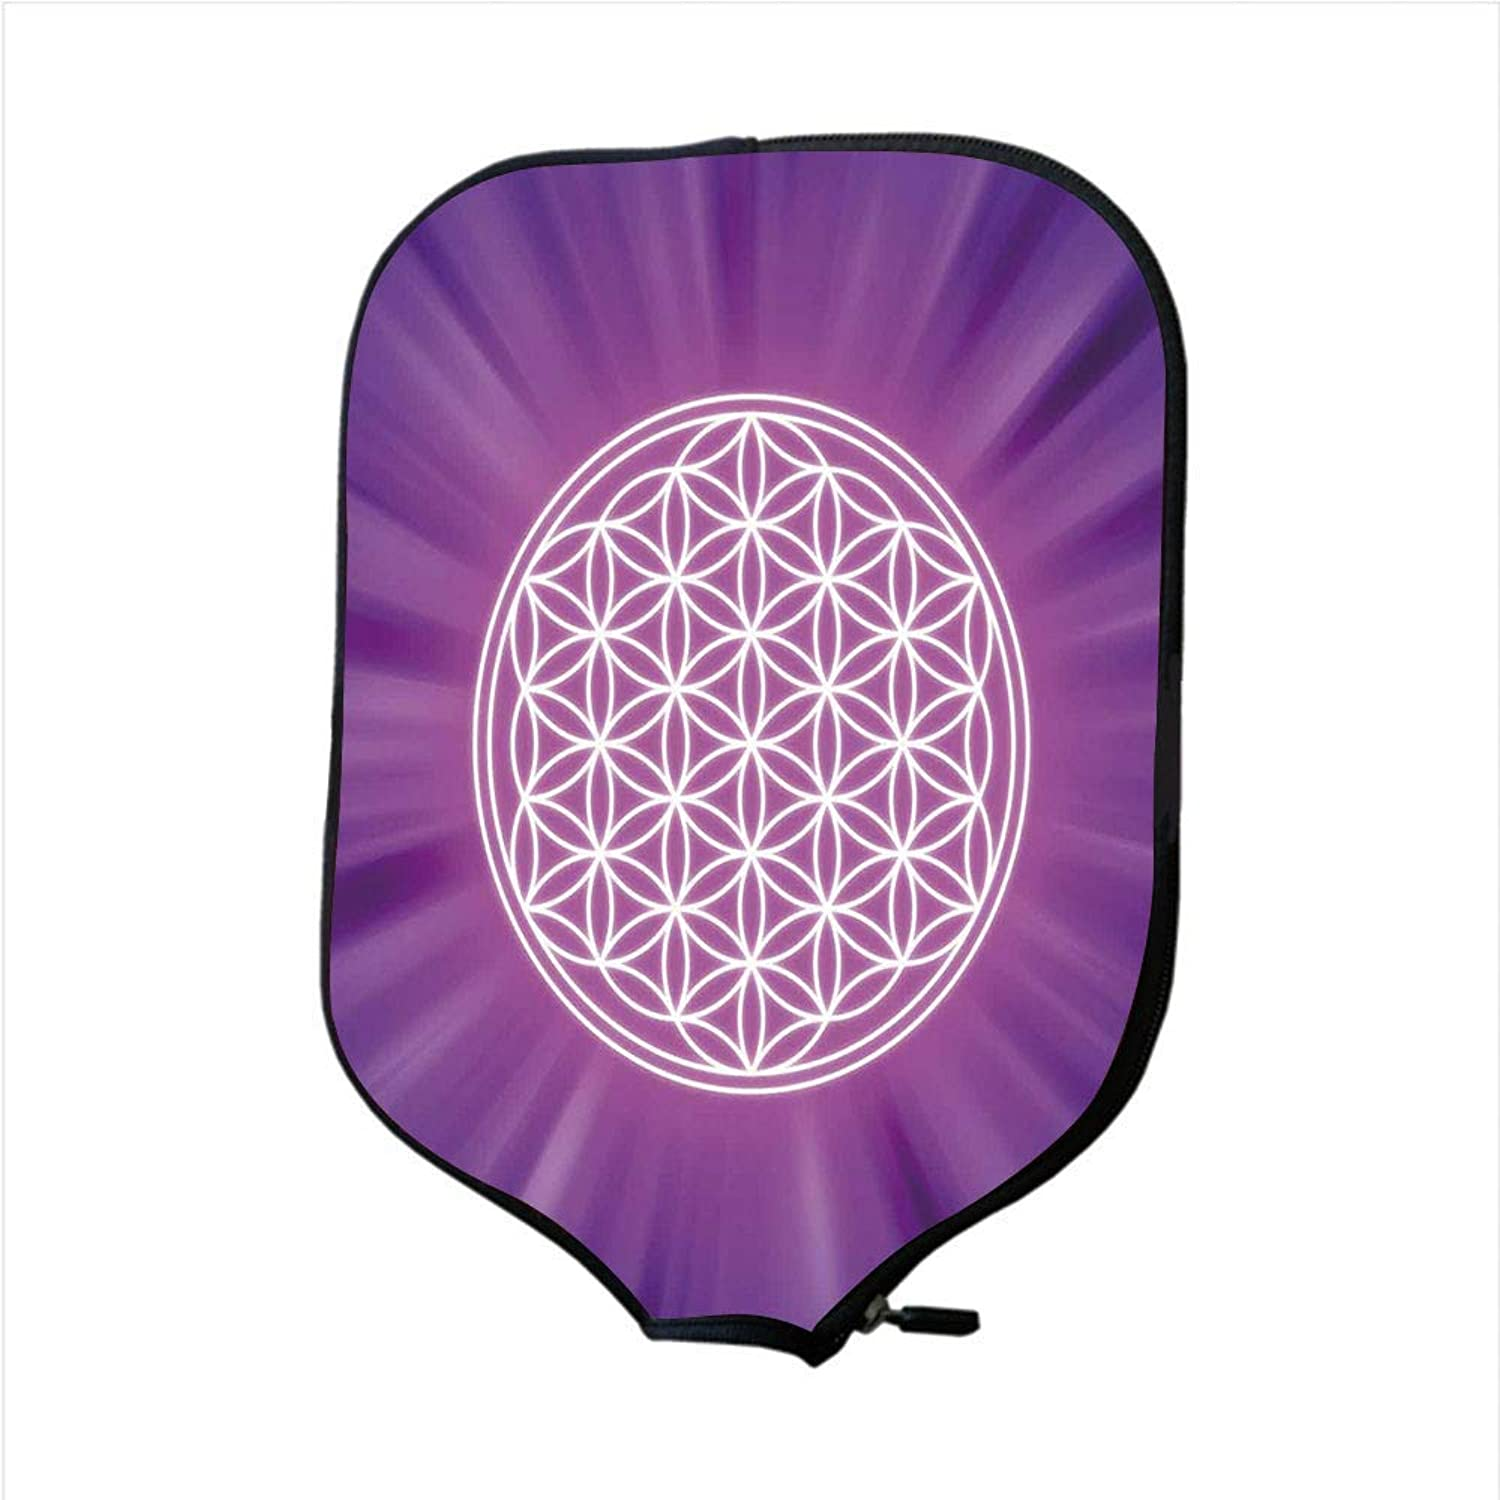 Fine Neoprene Pickleball Paddle Racket Cover Case,Sacred Geometry,Abstract Overlapping Circles on Spiritual Vibrant Background Print,Fuchsia Purple,Fit for Most Rackets